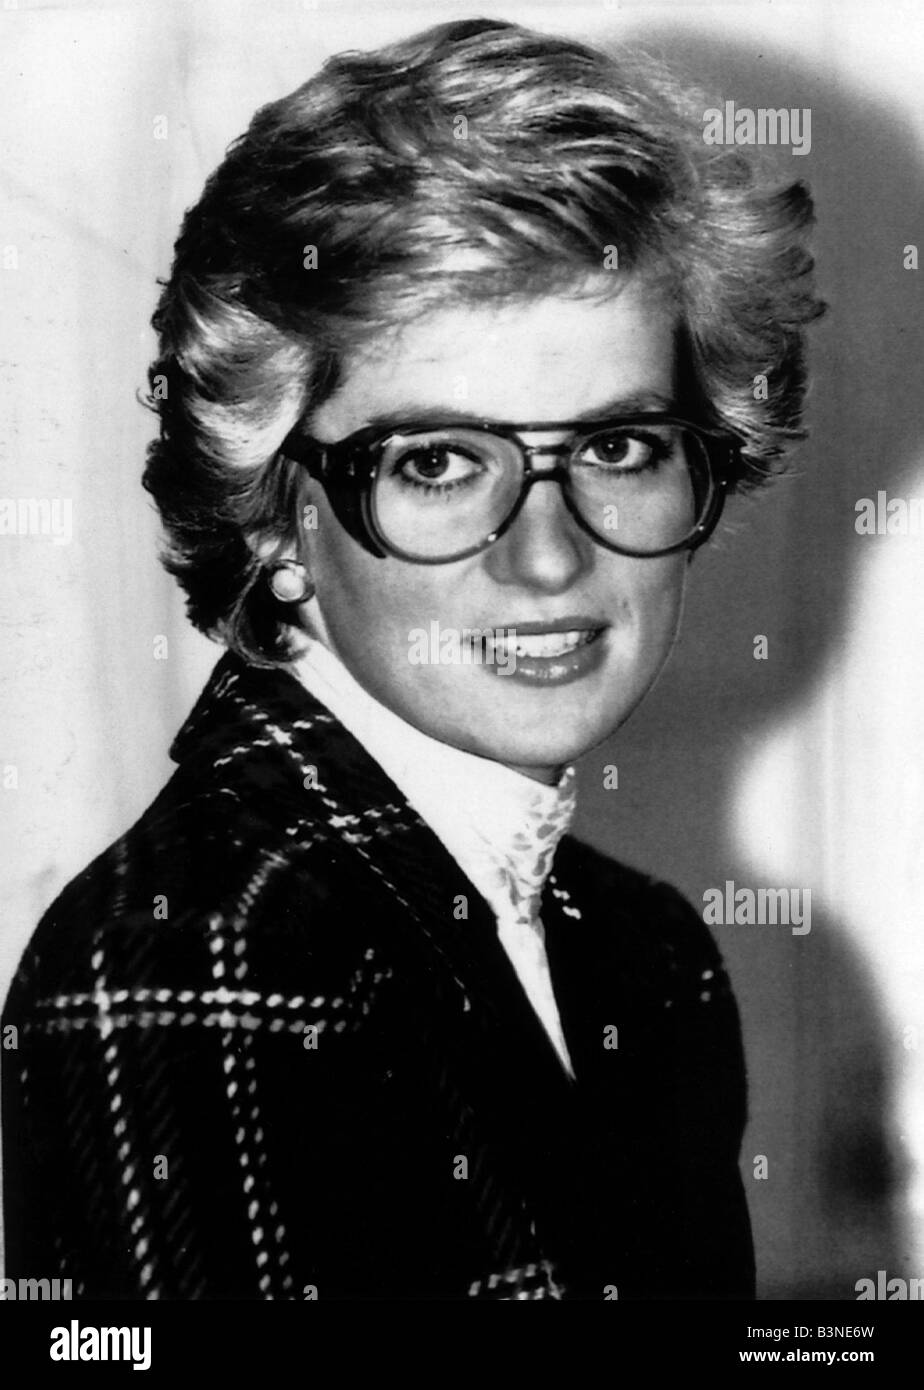 c9bc8825f65 Princess Diana wears safety glasses goggles spectacles Princess Diana  February 1990